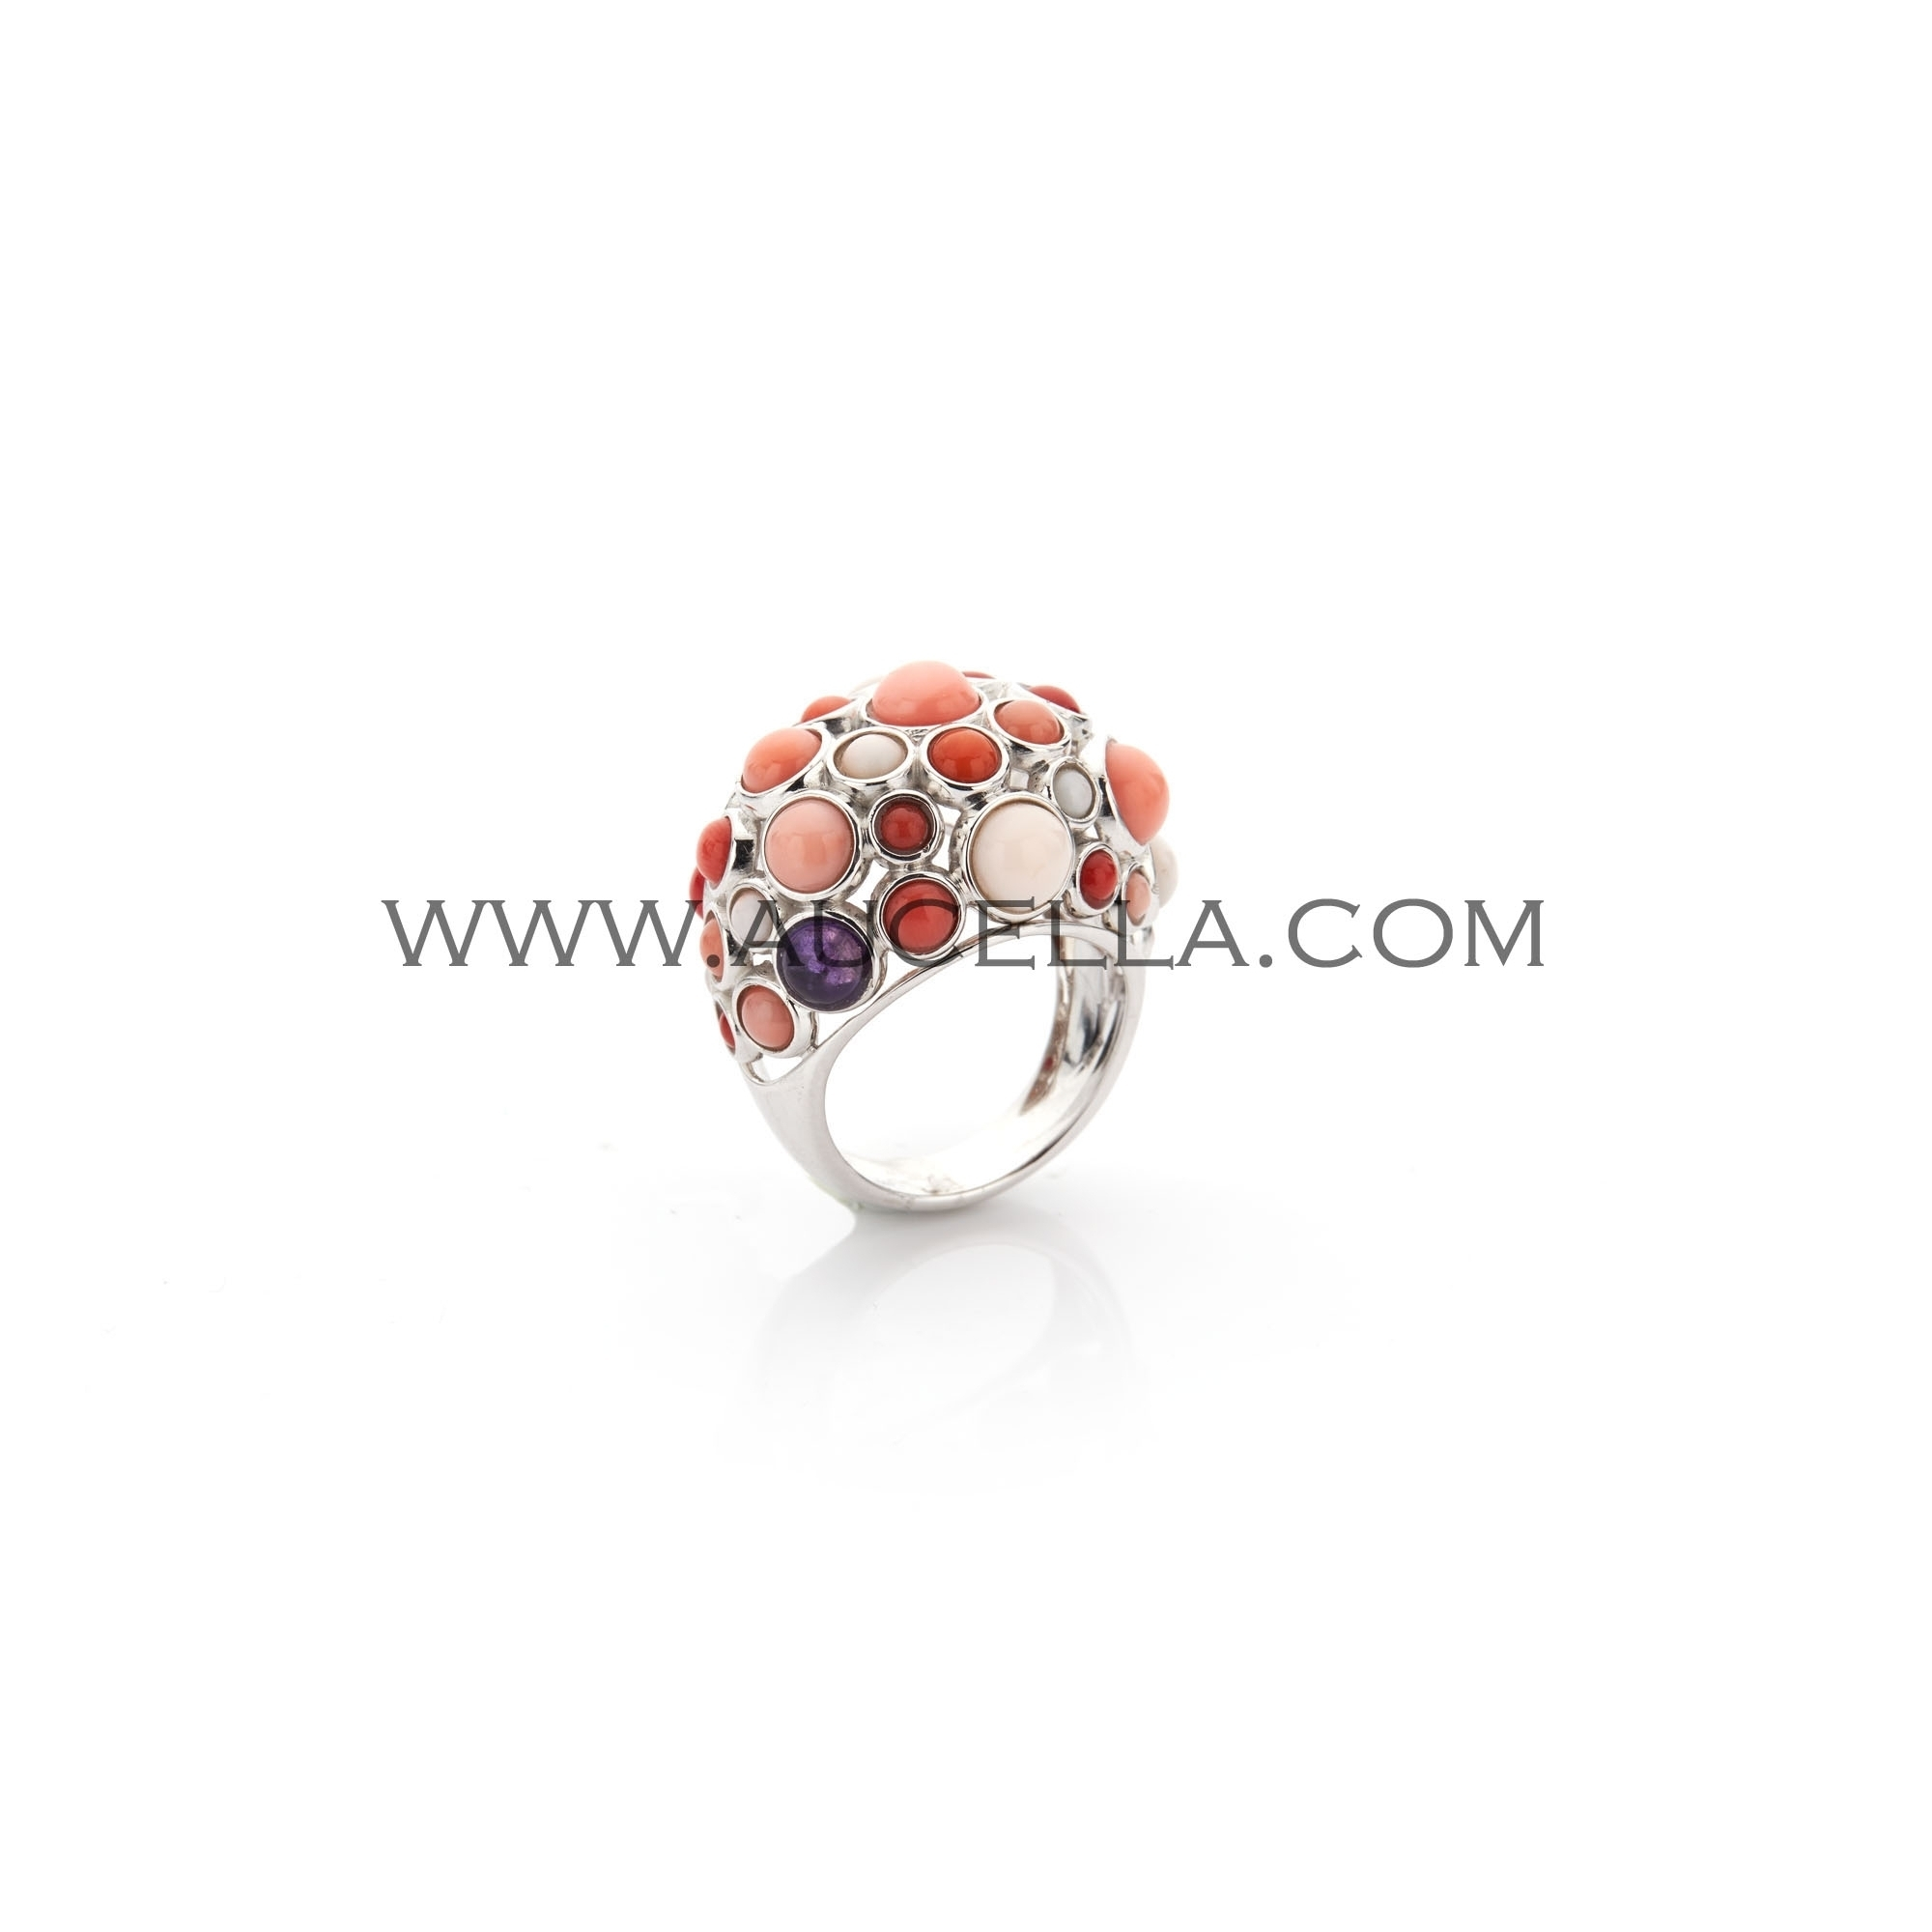 Ring model Pave with coral and silver